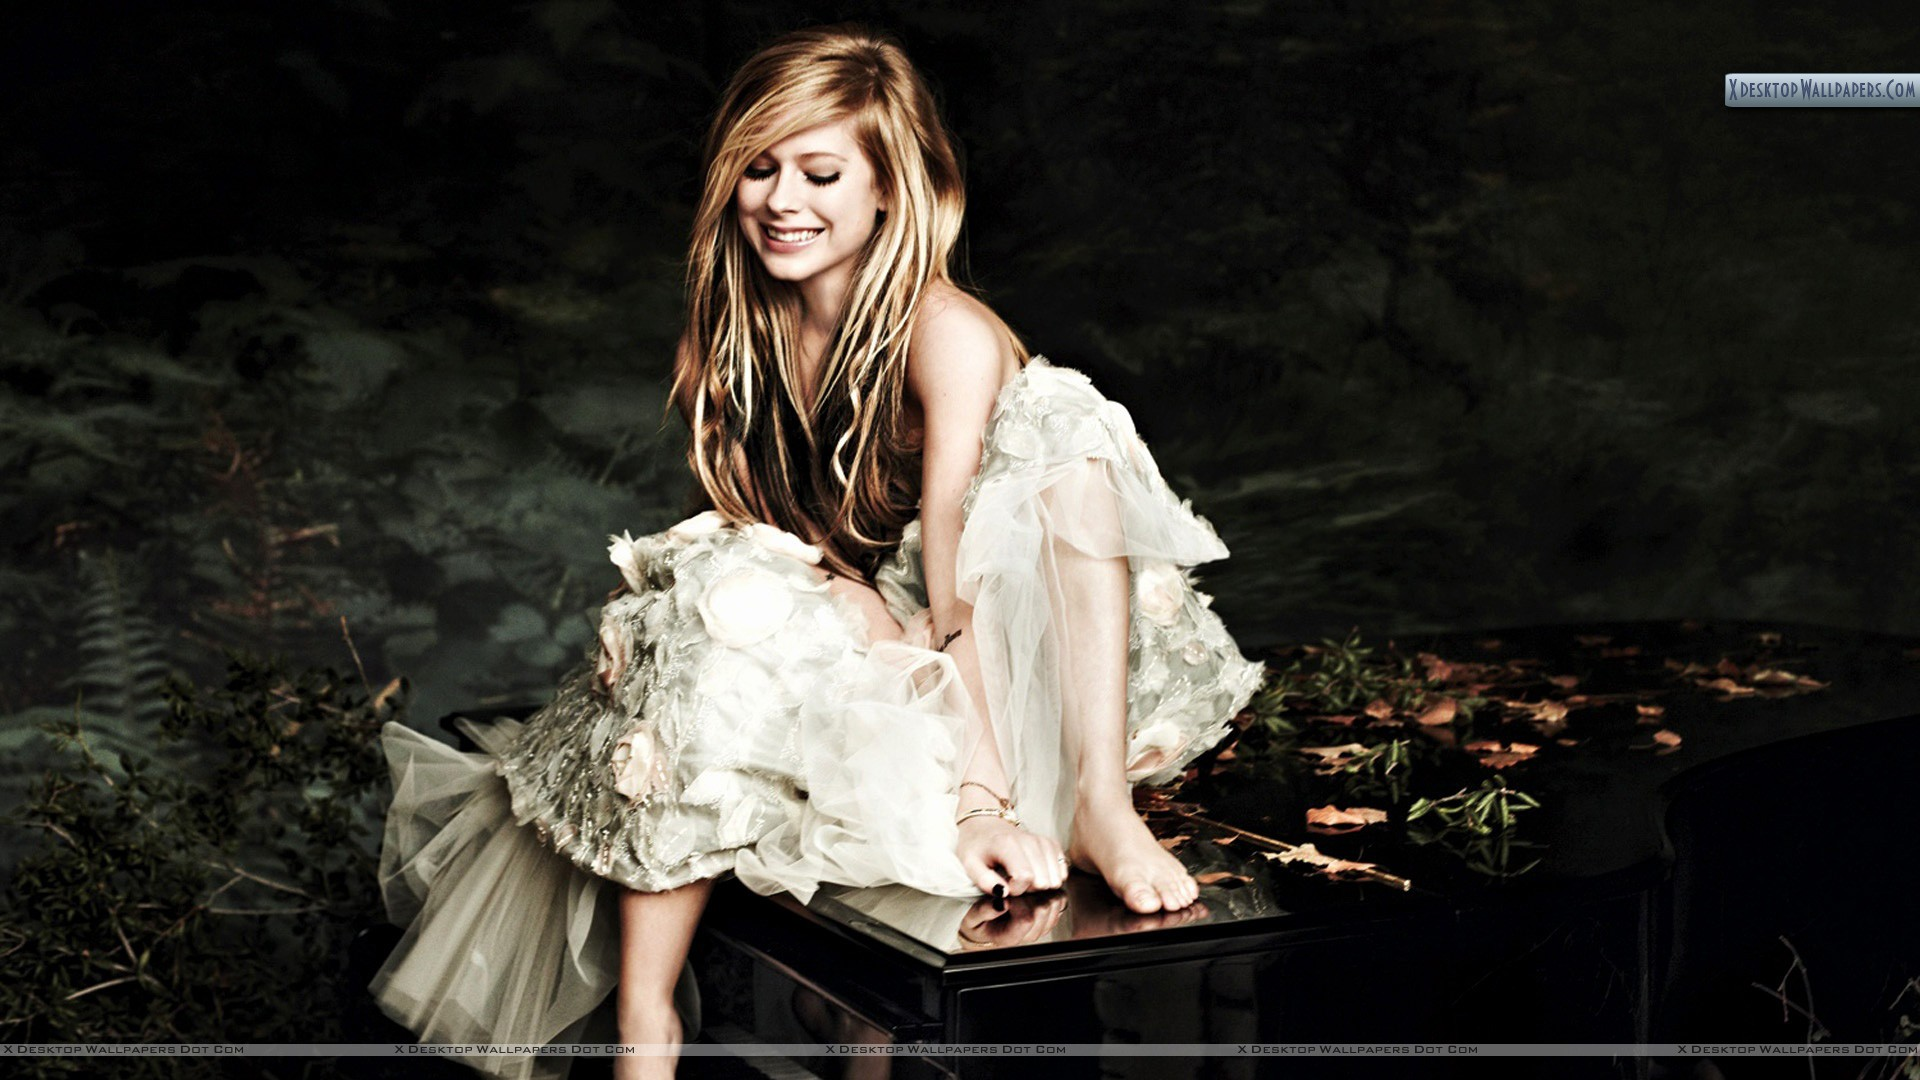 Avril Lavigne Smiling Sitting On Piano Side Wallpaper